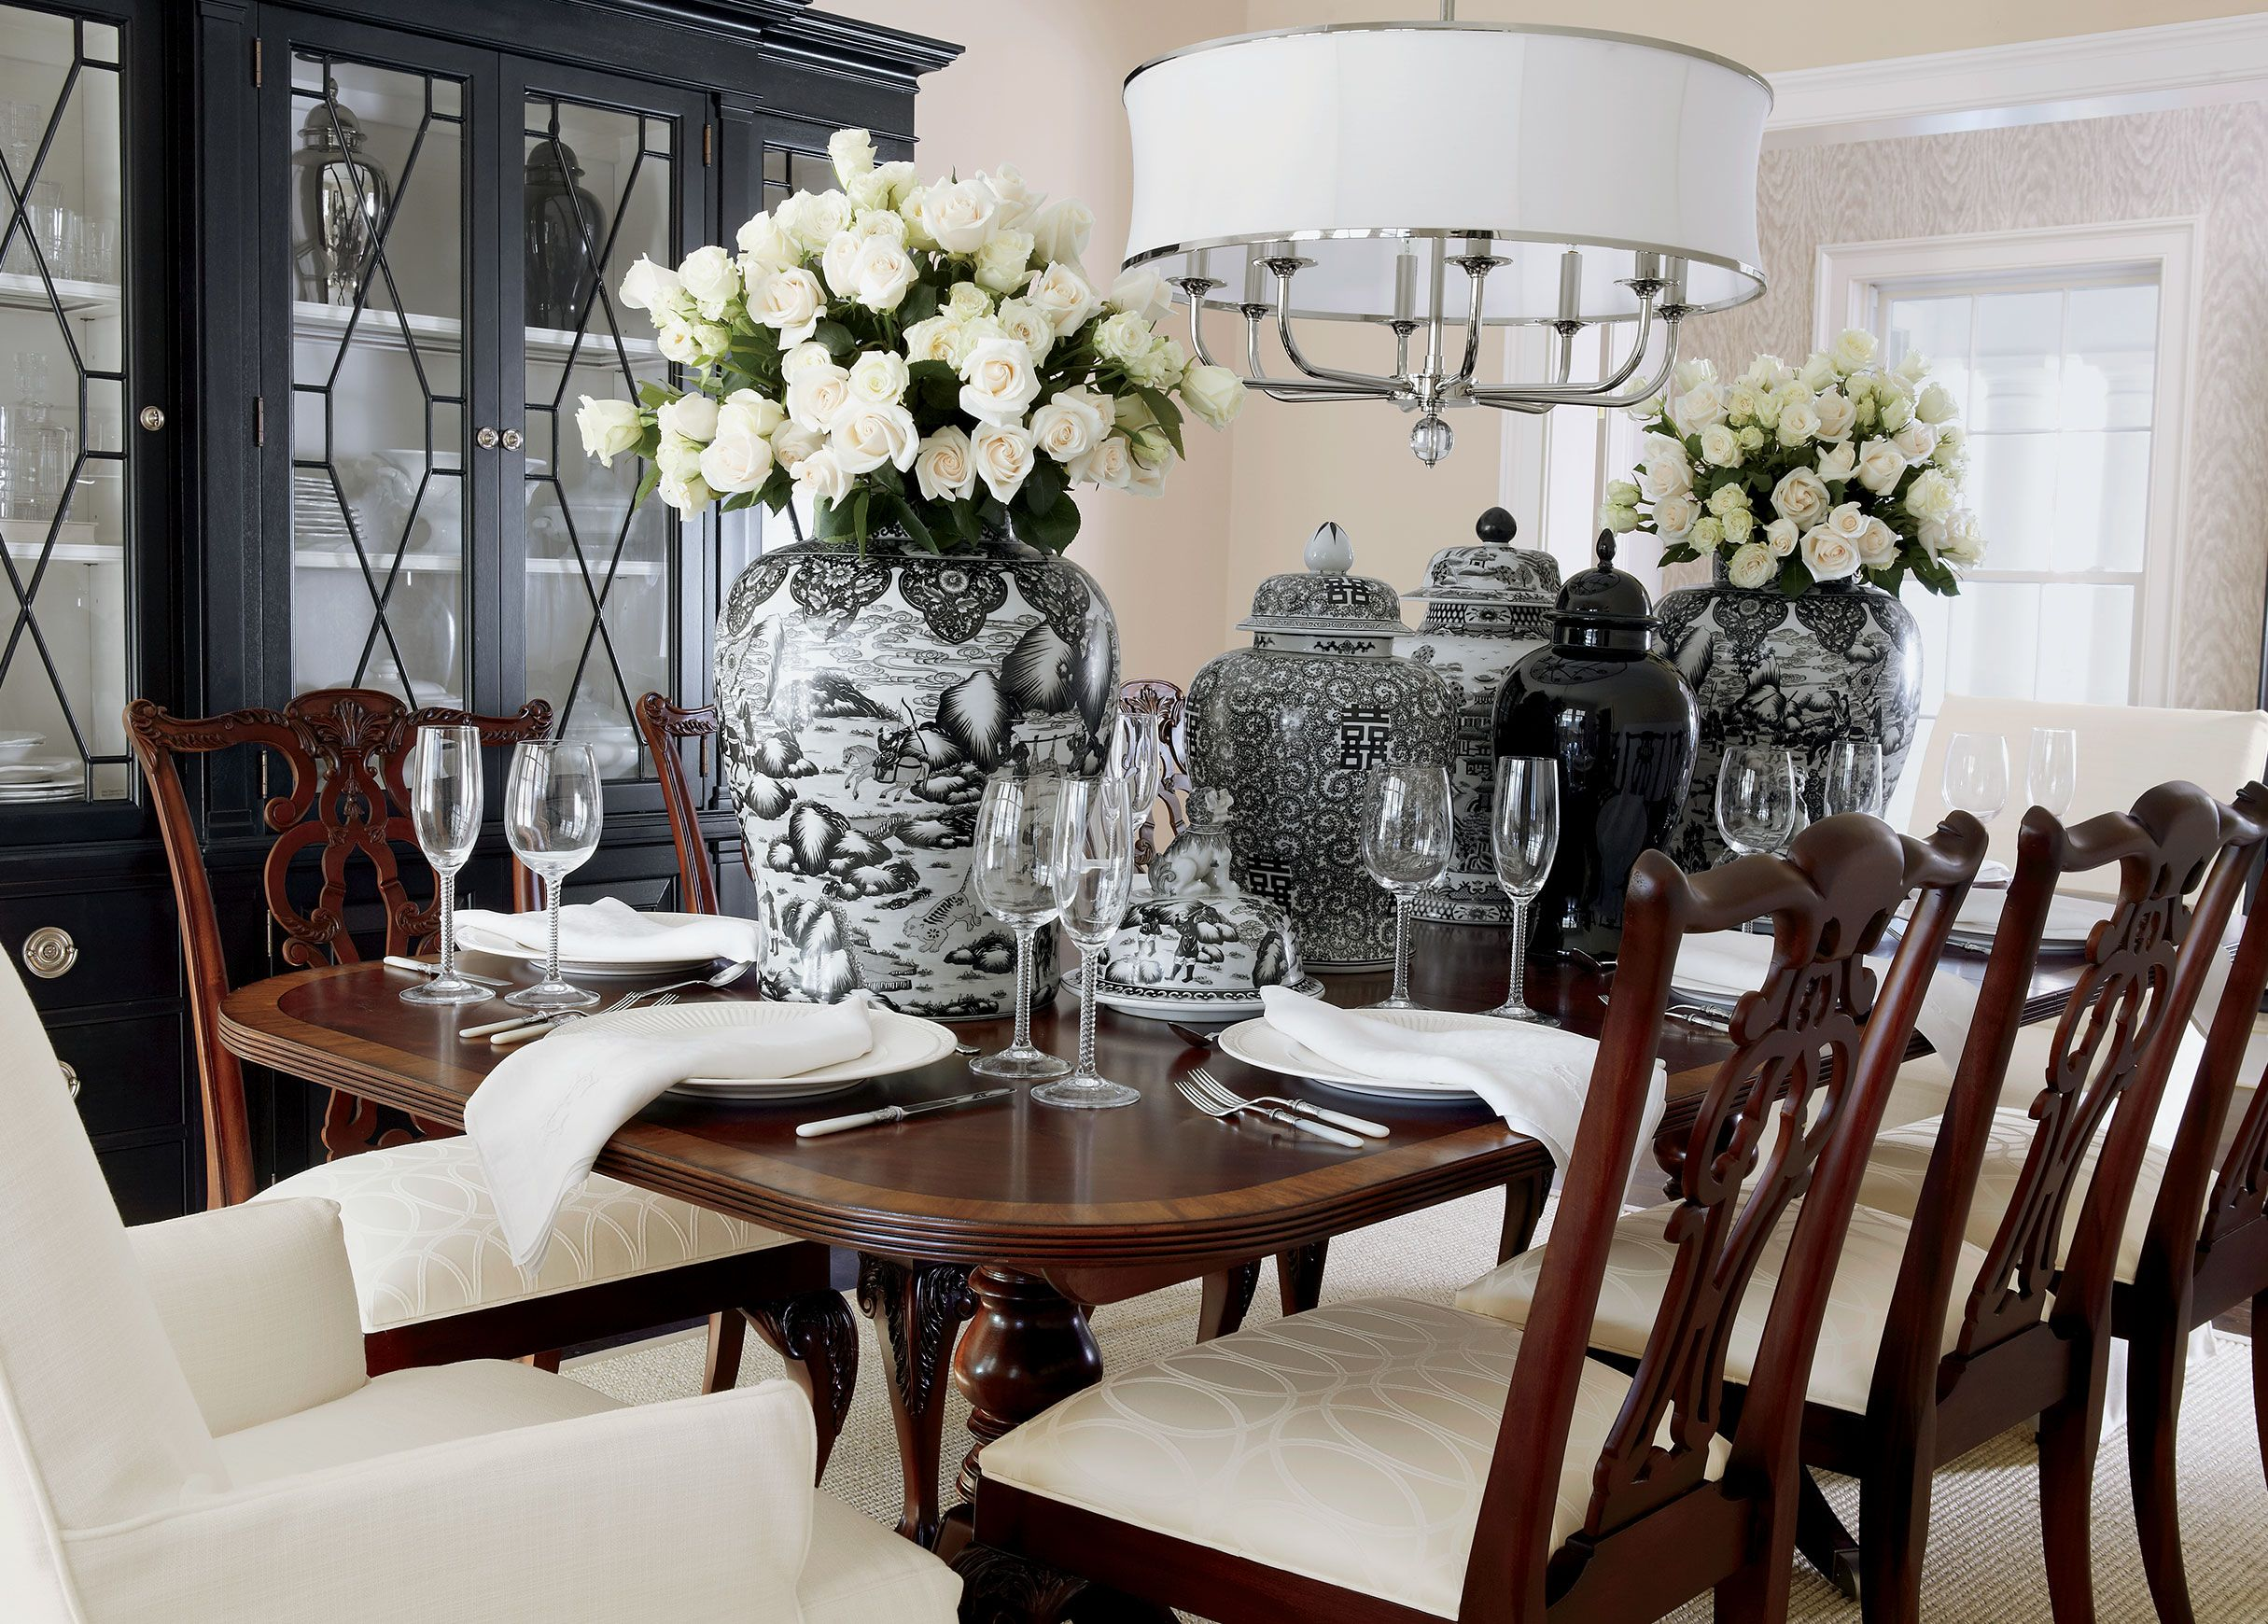 The Art Of The Dinner Party  Room House And Room Kitchen Cool Decorating Ideas For Dining Room Table Decorating Design